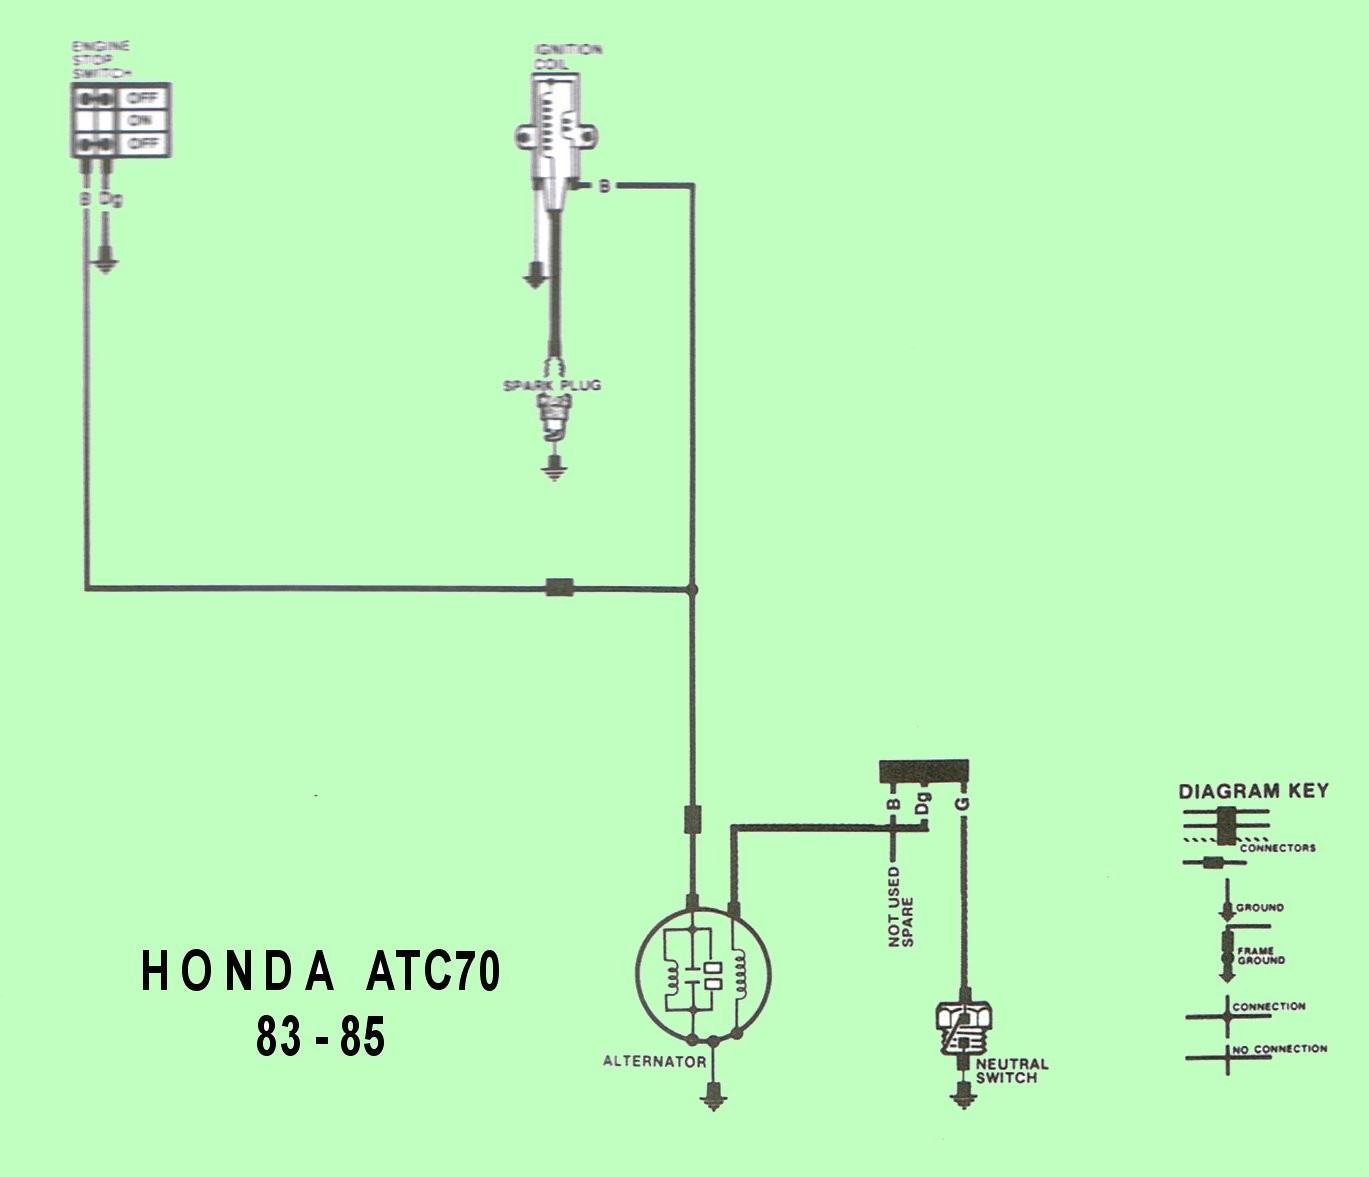 1985 Honda Atc 70 Wiring - Generac Engine Wiring Schematic for Wiring  Diagram SchematicsWiring Diagram Schematics